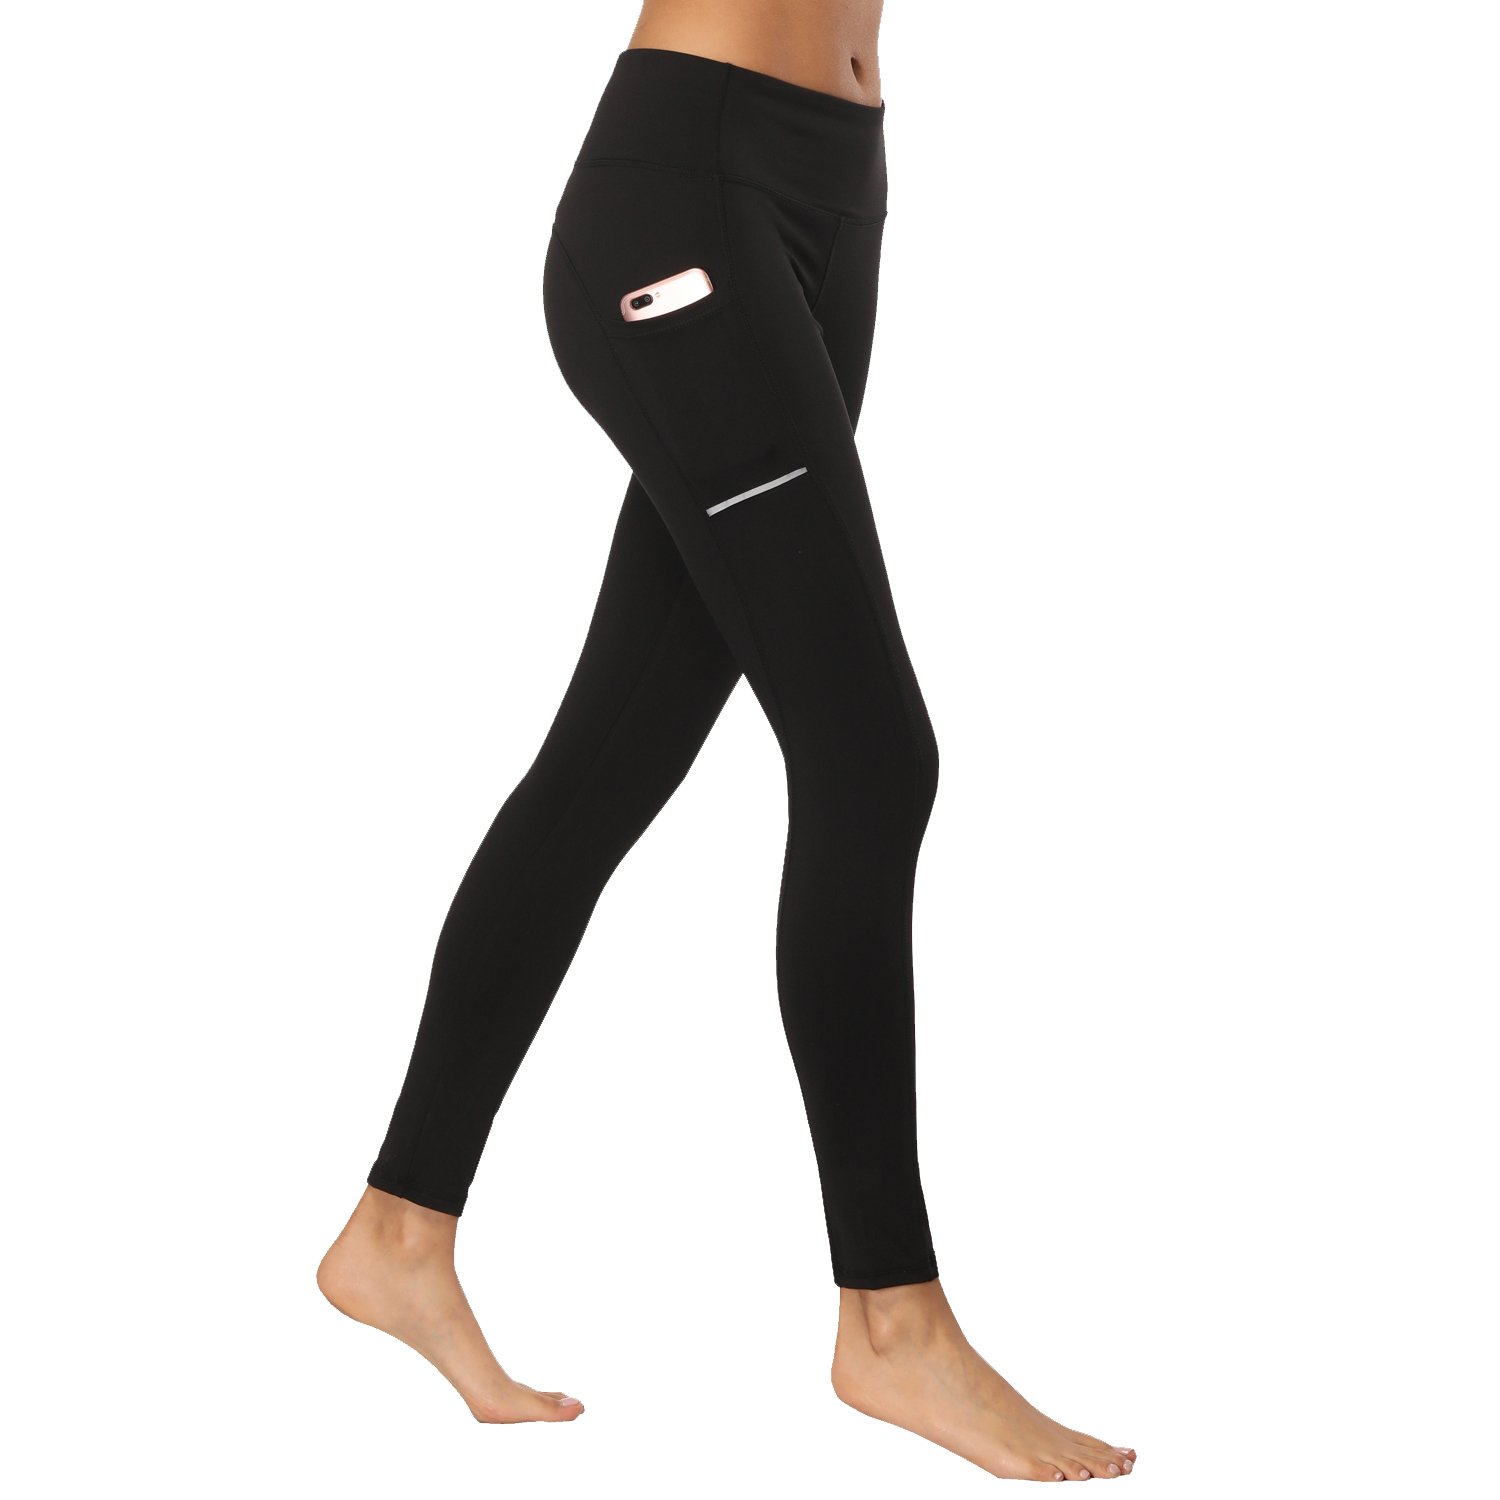 d29ebd7558725d LEGGINGS WITH POCKETS:The pockets are large enough to hold a phone. And no  more worry about your essentials such as wallet, sweat towel when doing  every ...